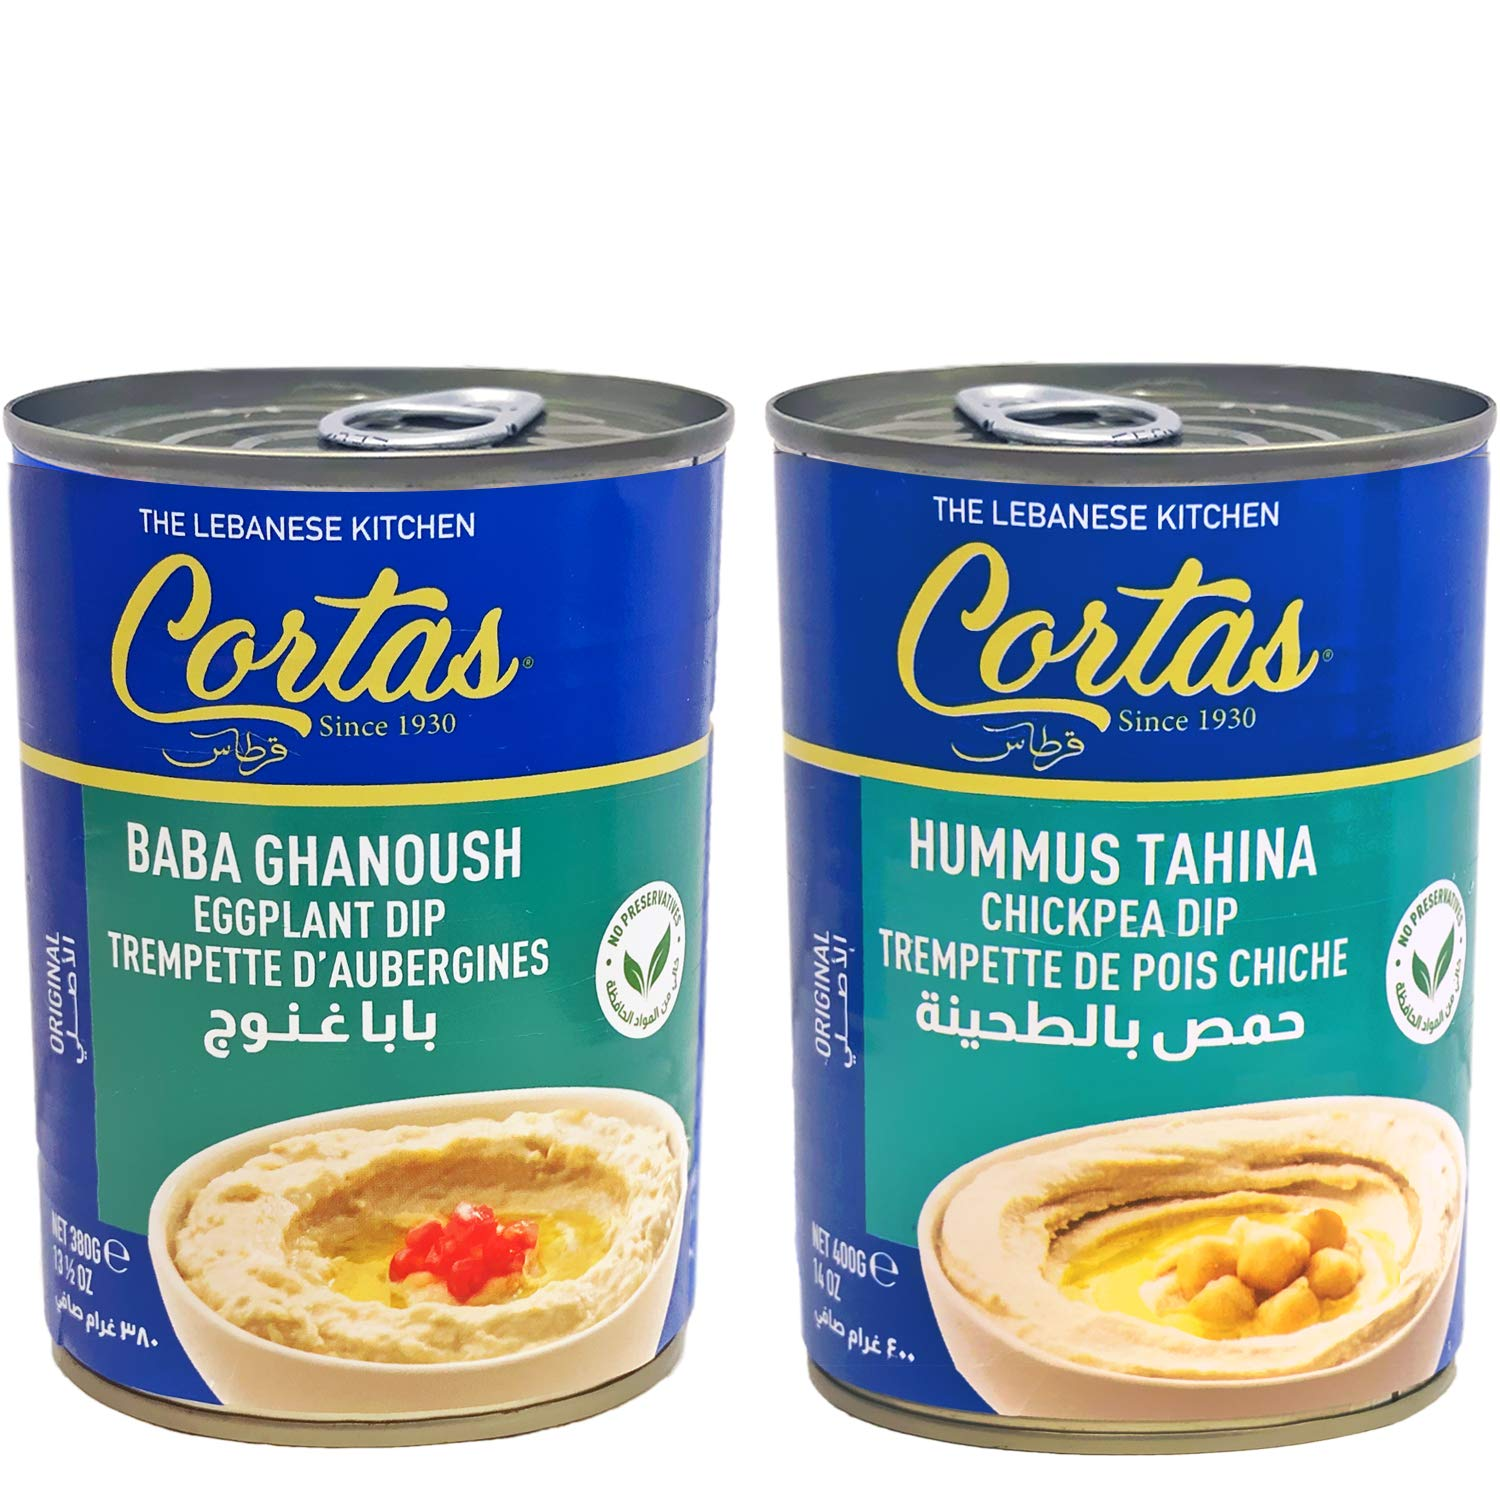 Cortas - Baba Ghanoush & Hummus Tahina (2 Cans Appetizer Combo), Eggplant Dip & Chickpea Dip, Ready to Serve (Gluten Free)